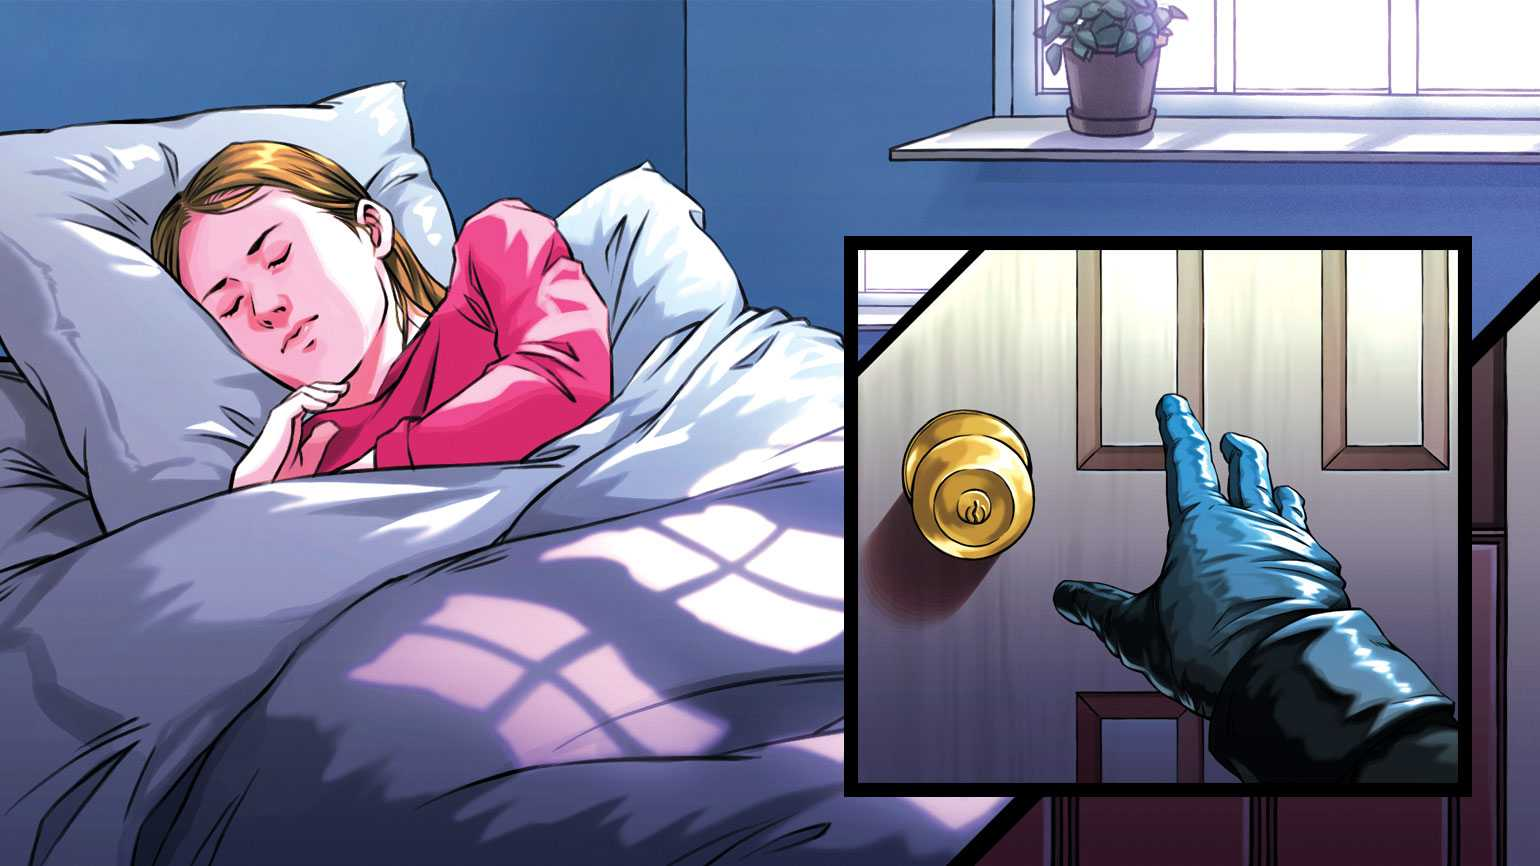 An artist's rendering of a woman sleeping on the left and a hand reaching for the doorknob on right.